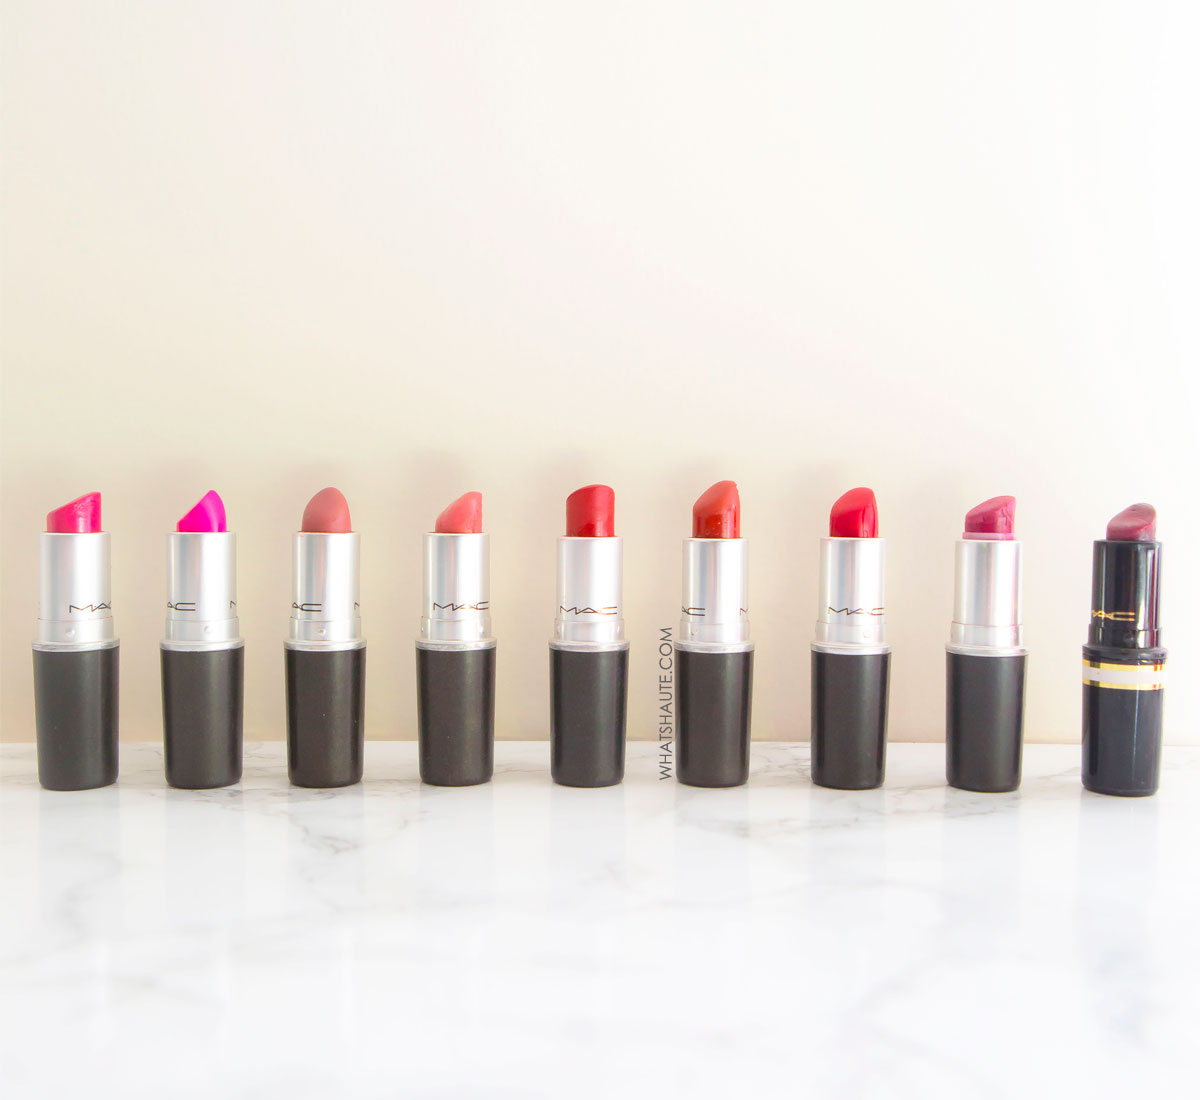 9 Must-have MAC lipsticks: Heaux, RiRi Woo, Lickable, Fanfare, Crème in Your Coffee, Chili, Candy Yum Yum, Dark Deed, Russian Red